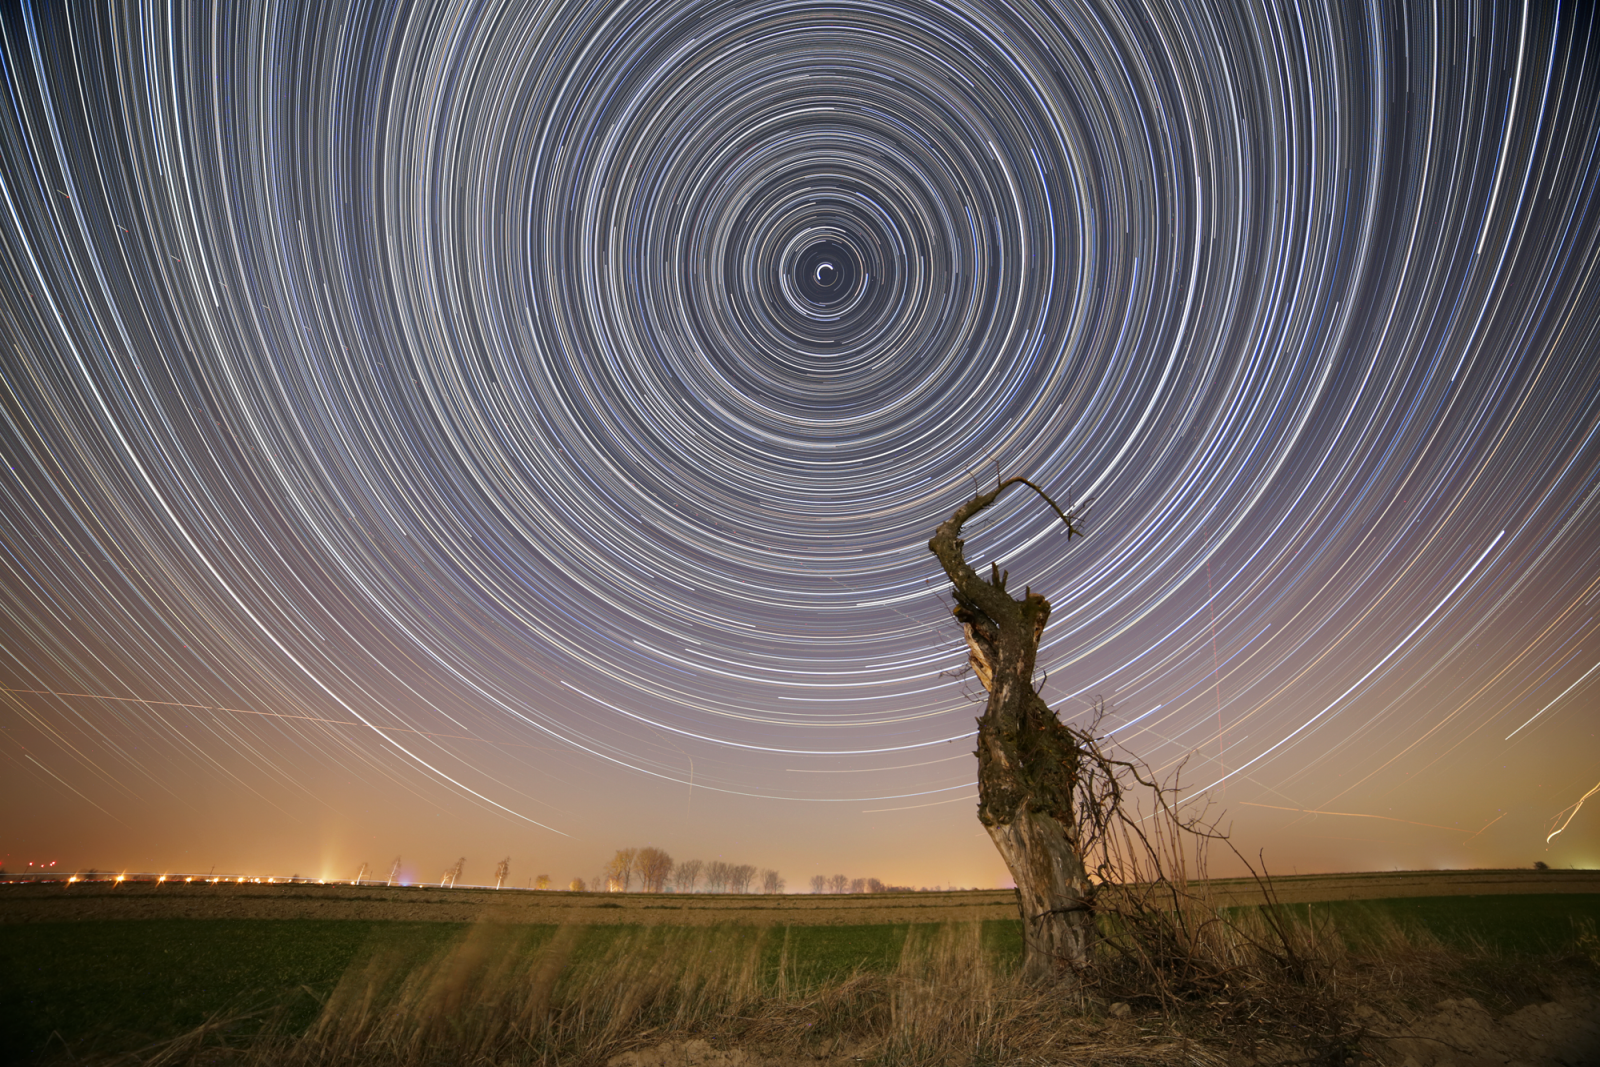 547881543_startrails06.thumb.png.0989c349459dfcdedca0667c7350134d.png